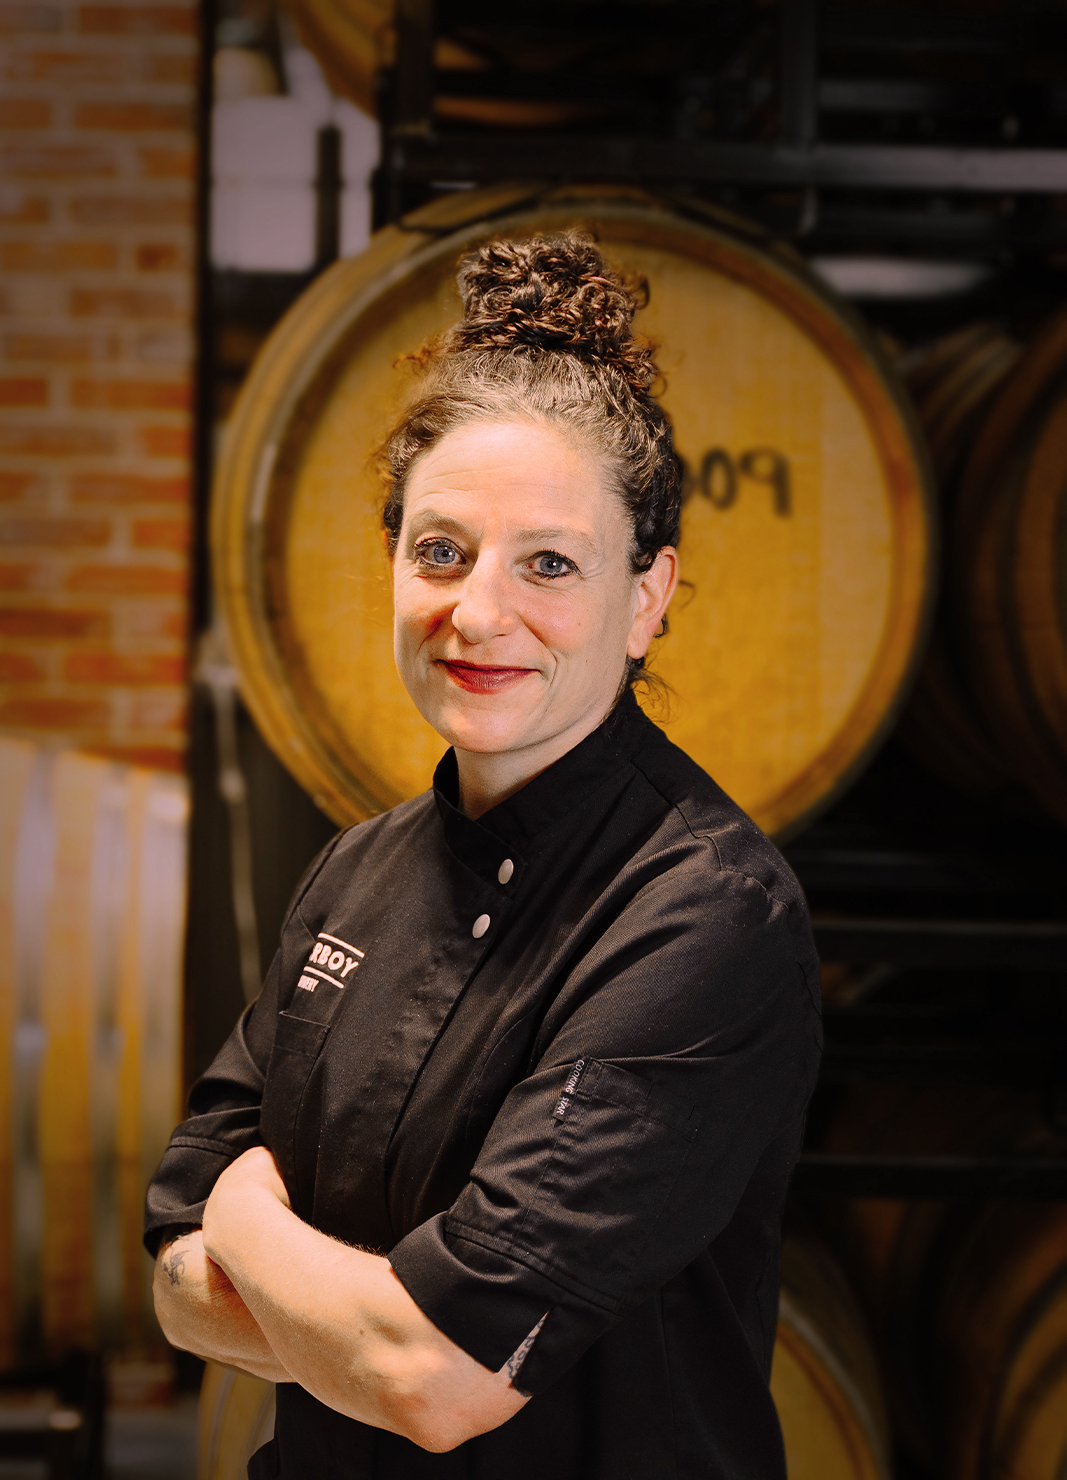 Carboy Executive Chef, Rebecca Weitzman, standing in front of wine barrels